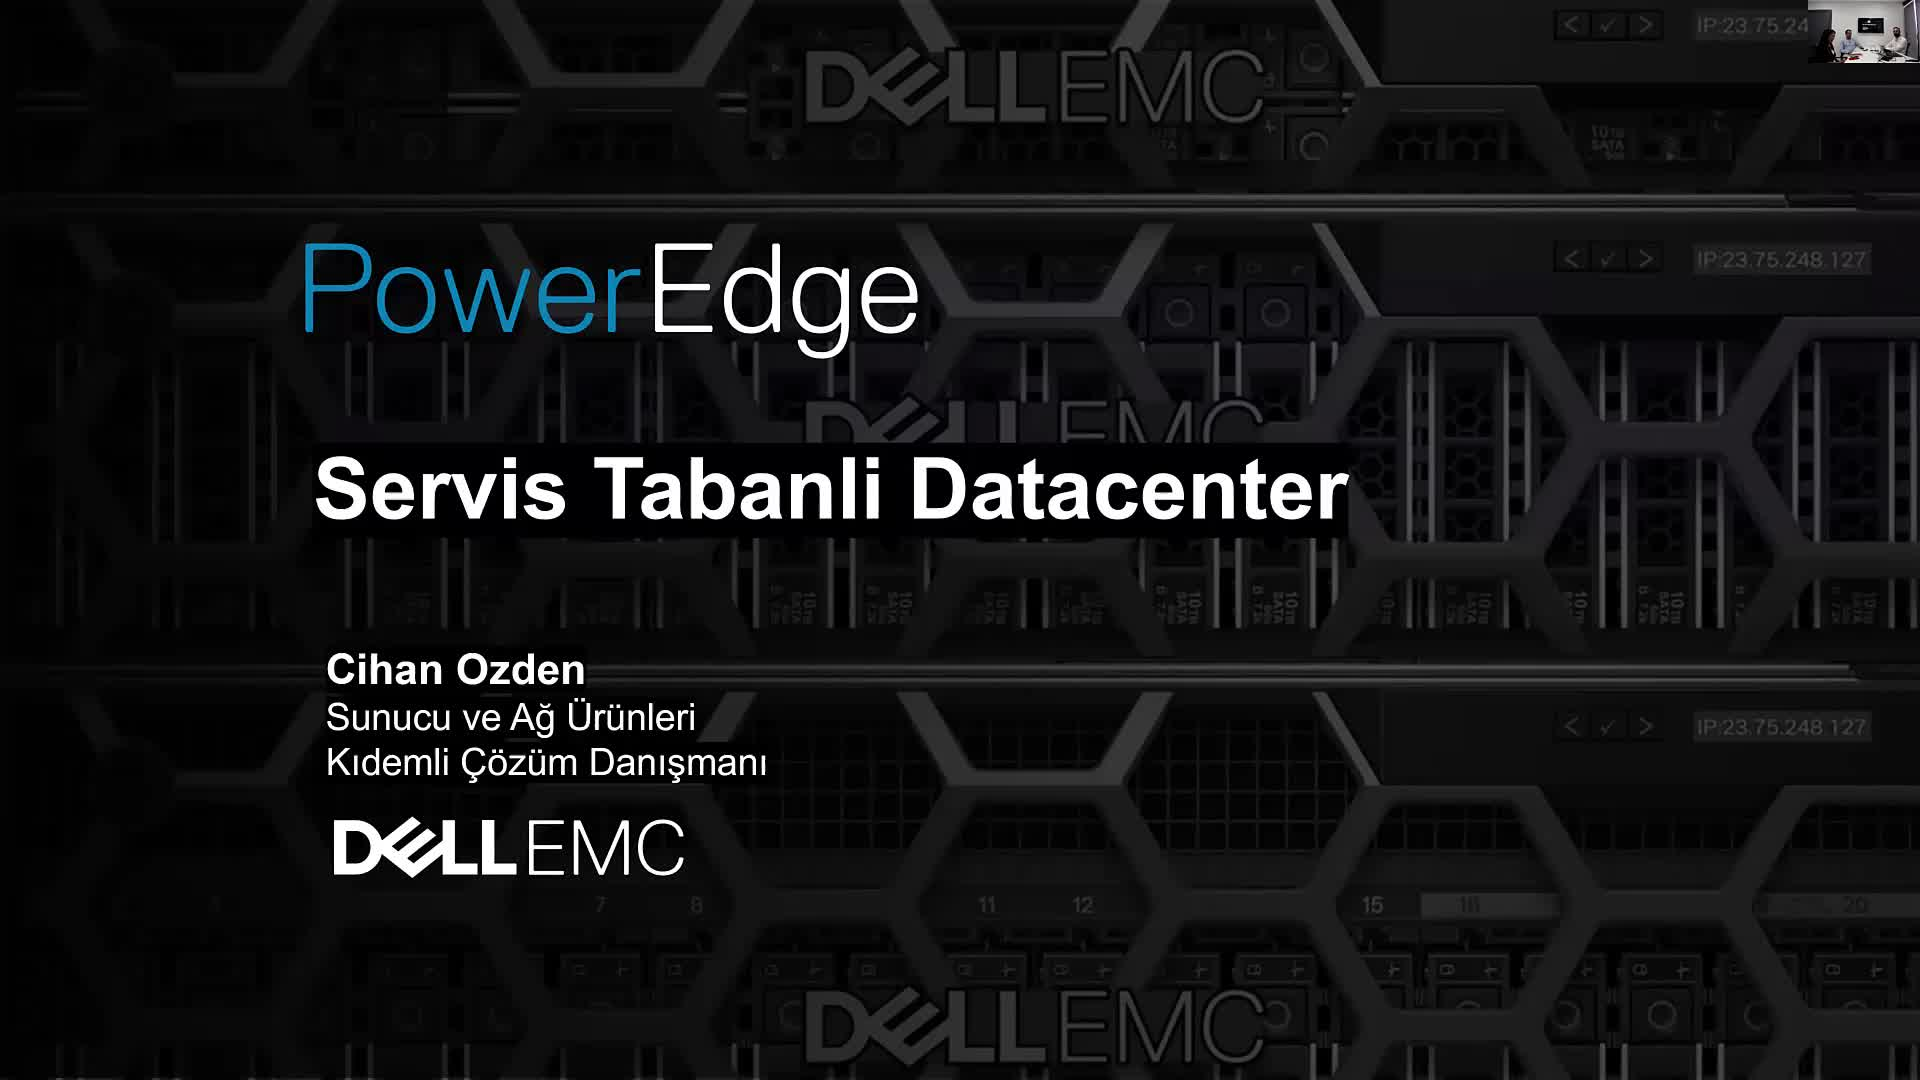 Dell PowerEdge MX Kinetic Compute ve Network Özellikleri